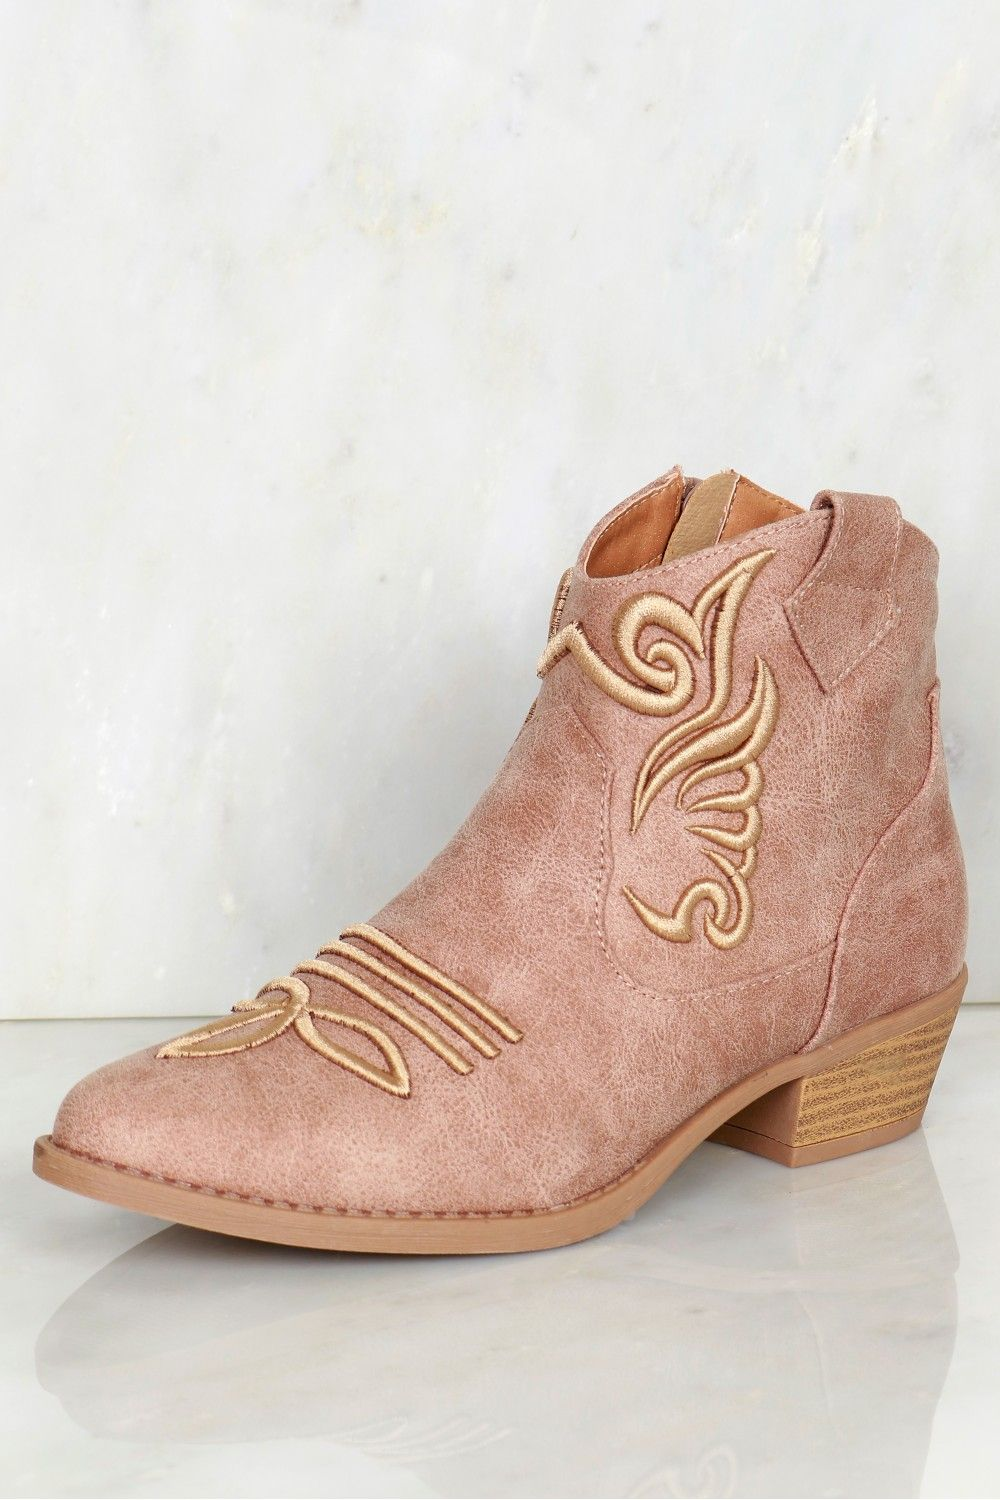 To acquire How to brown wear cowboy ankle boots pictures trends